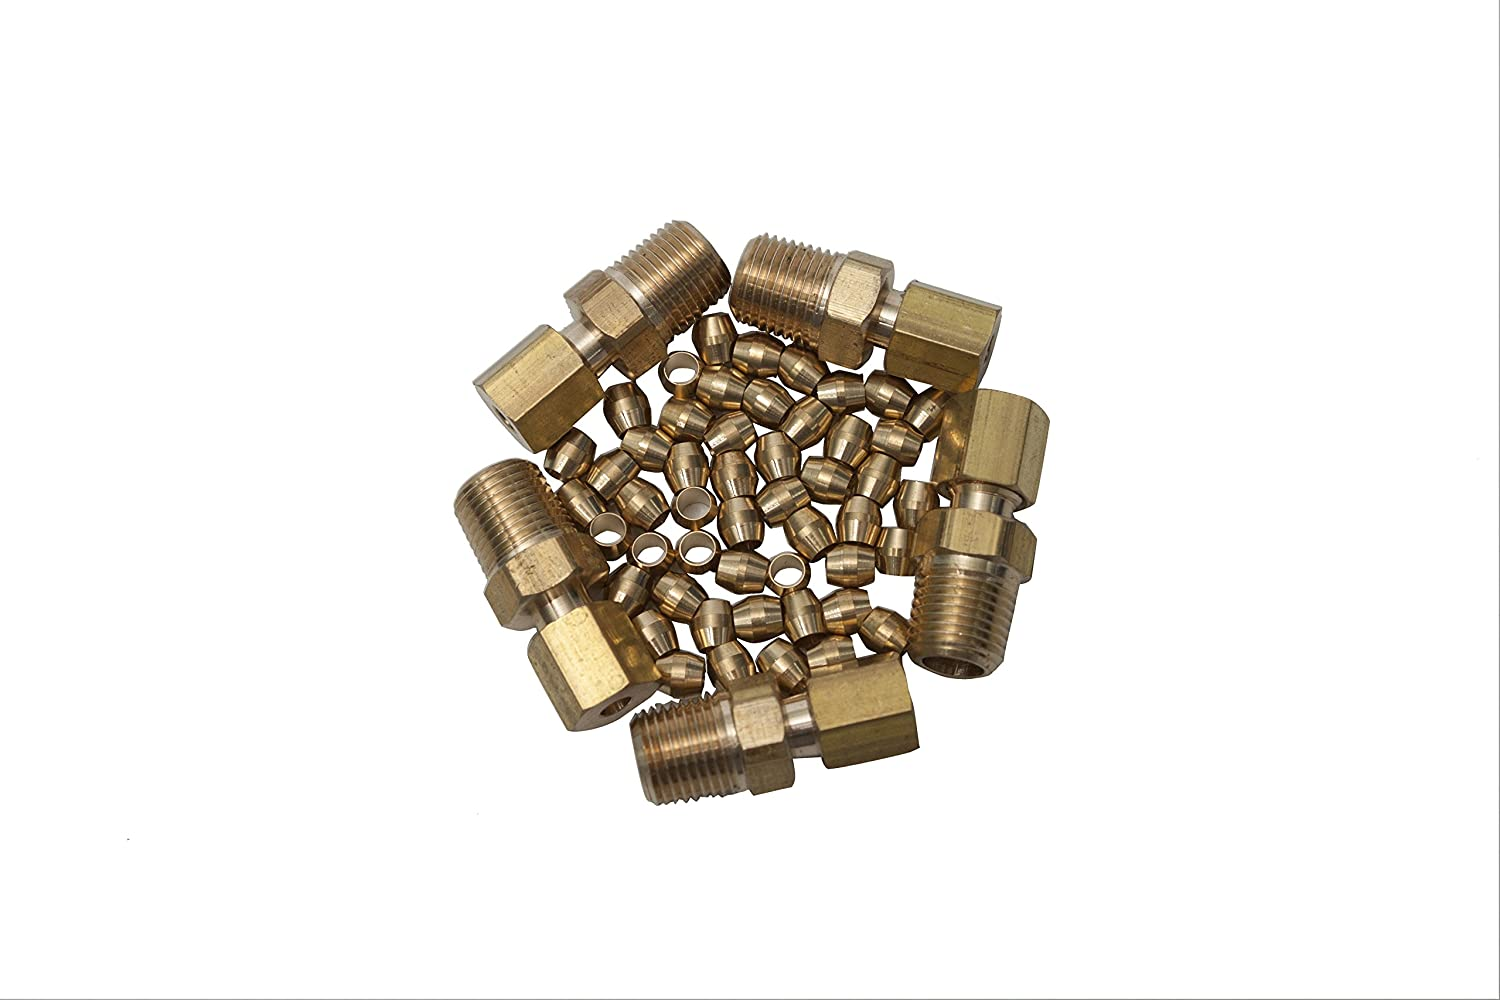 Pack of 55 Ningbo Haishu HuaxinYicheng Trade Co LTWFITTING 1//8 Brass Compression Sleeves Ferrule with 1//8 OD x 1//8 Male NPT Compression Connector Fitting Ltd.